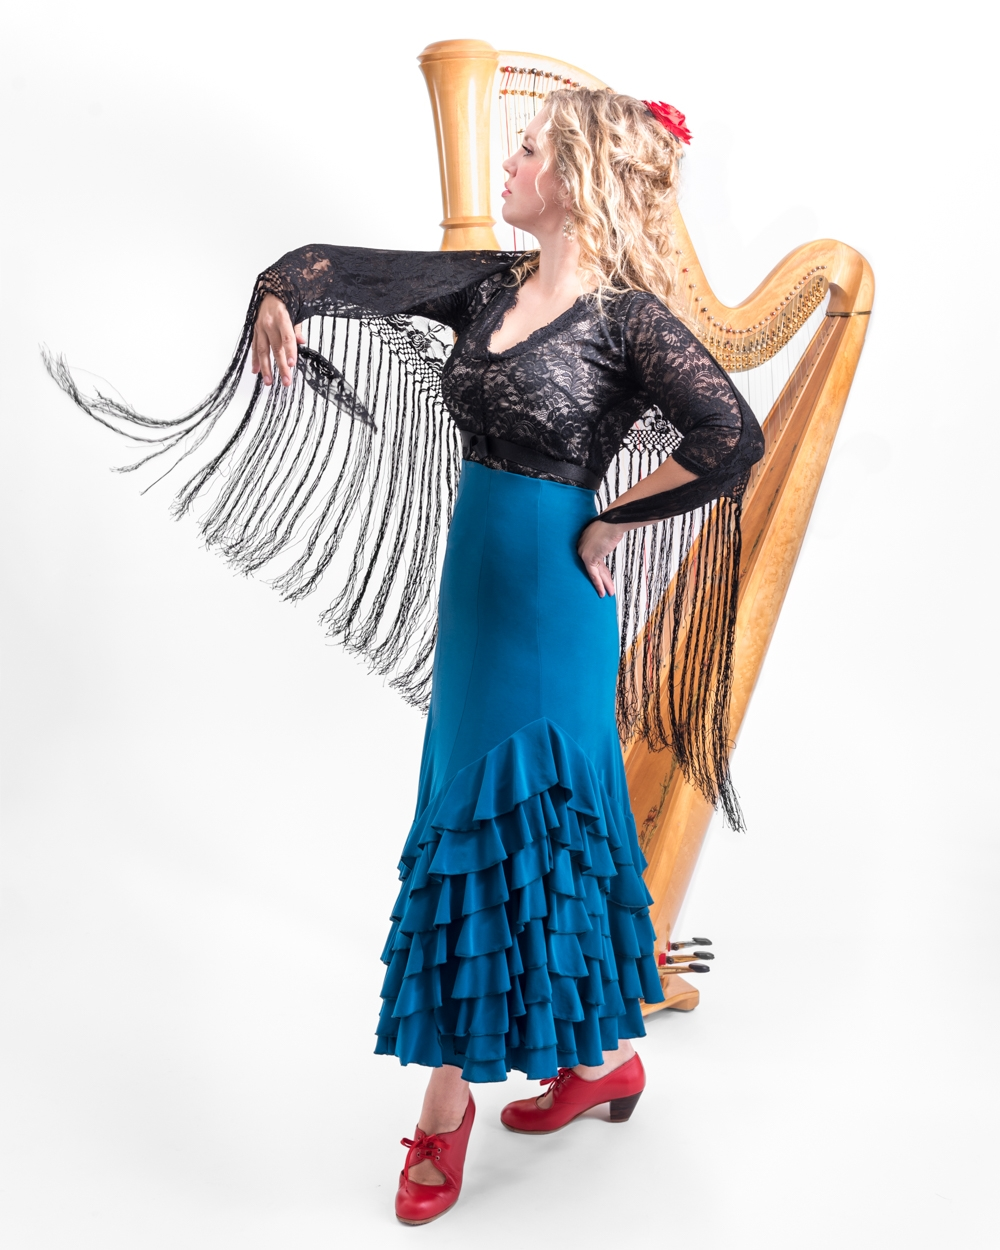 091416_Harpist-261-Edit